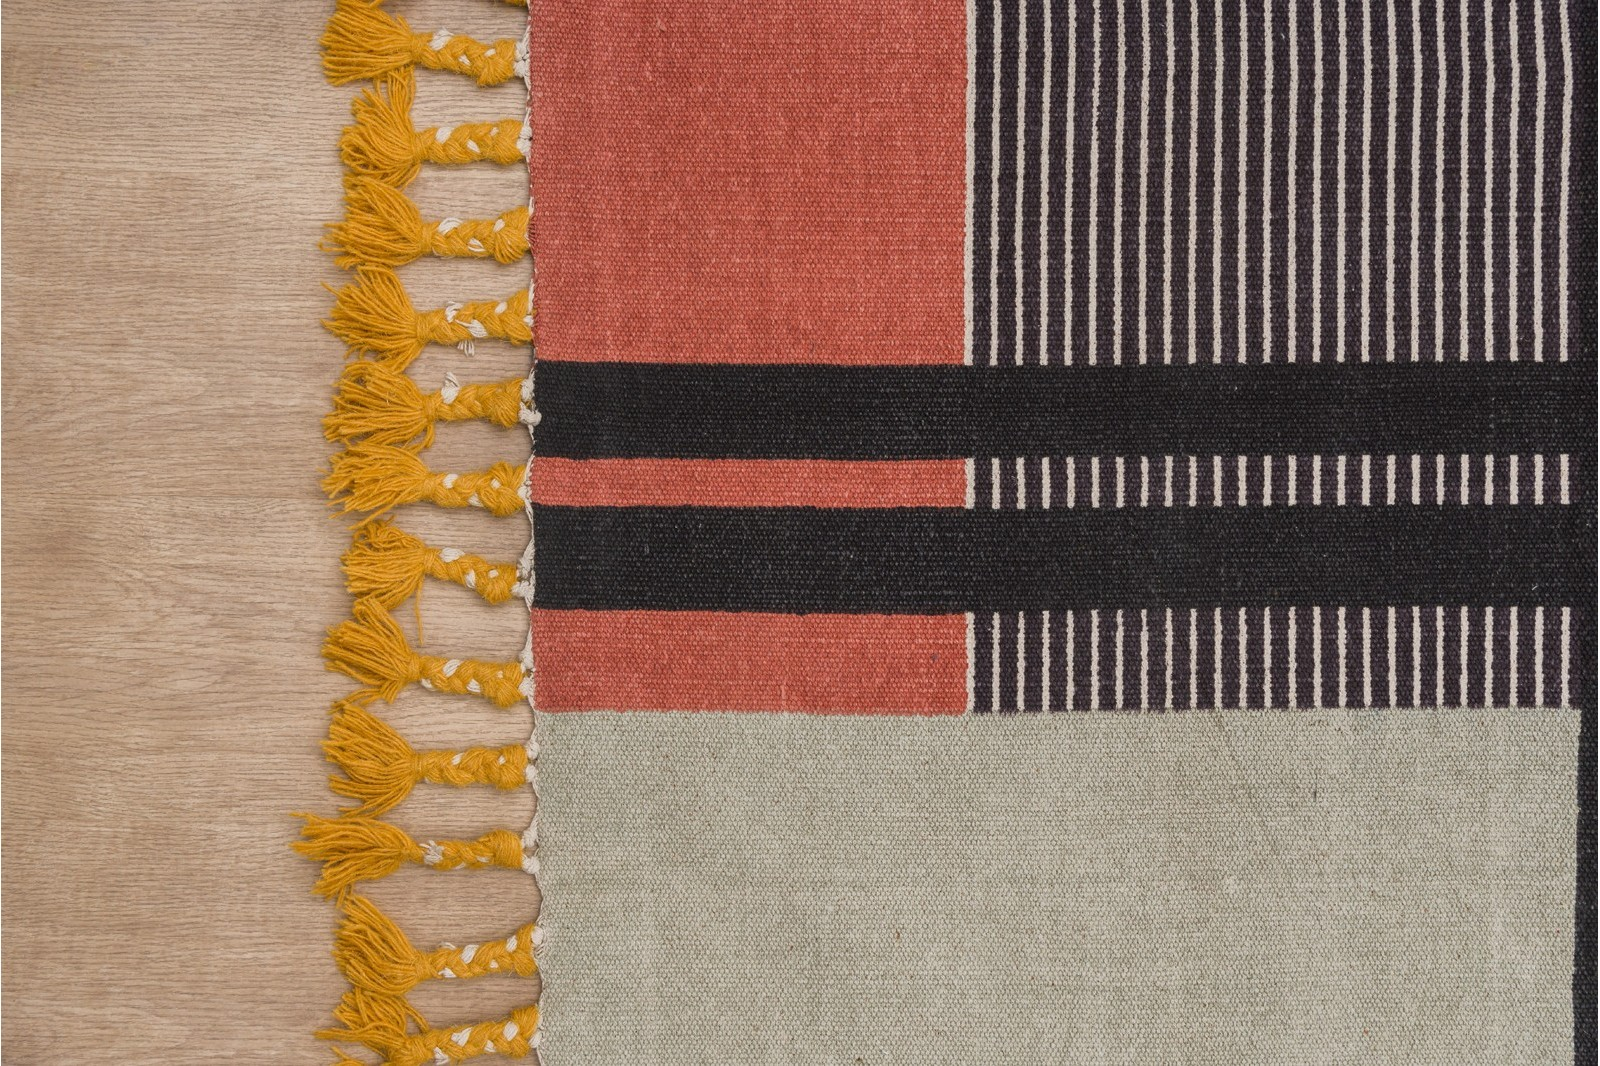 FRIDA RUG. ABSTRACT DESIGN AND FRINGES